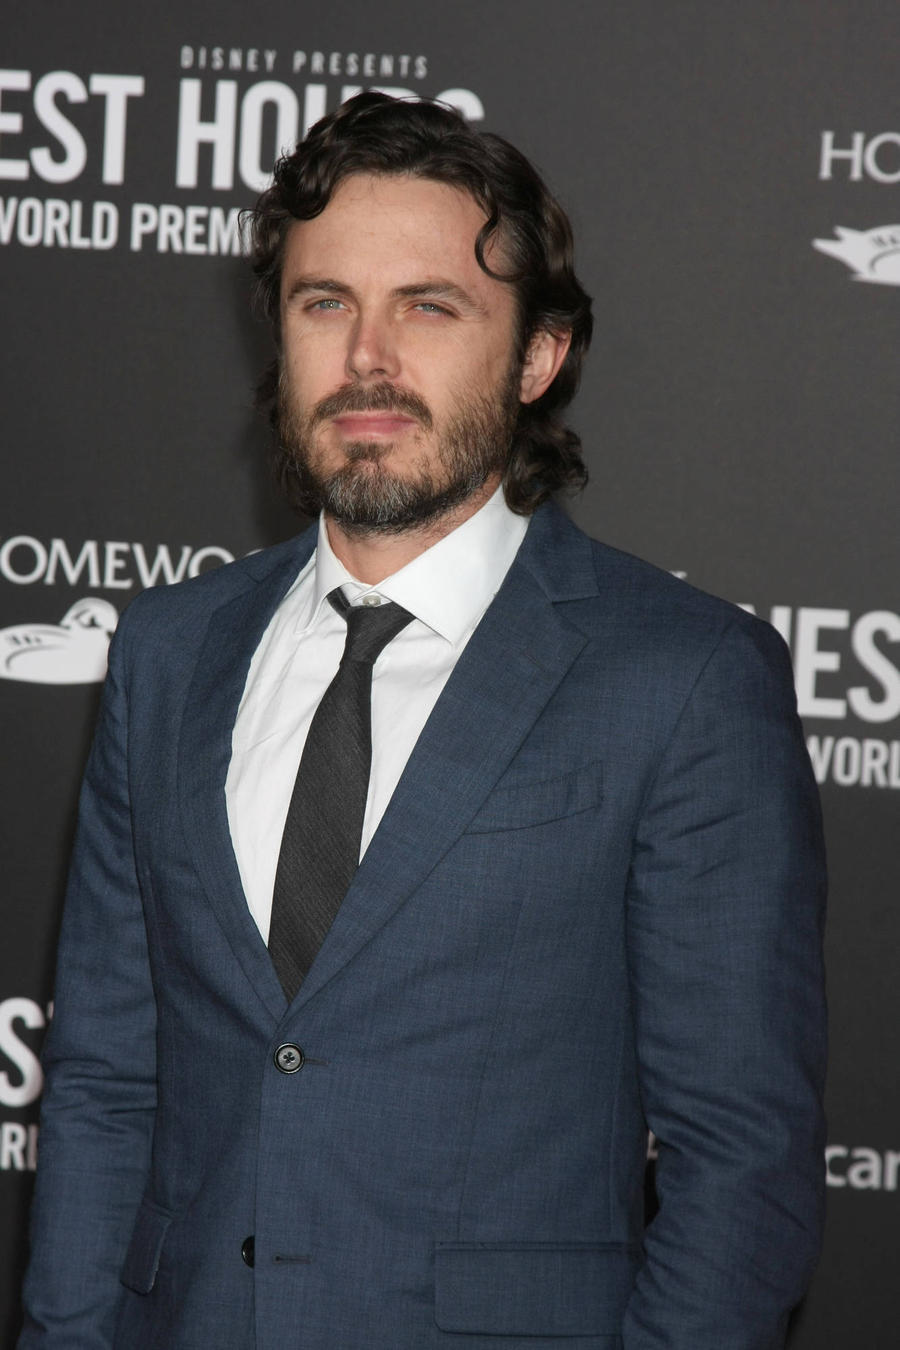 Casey Affleck Splits From Wife